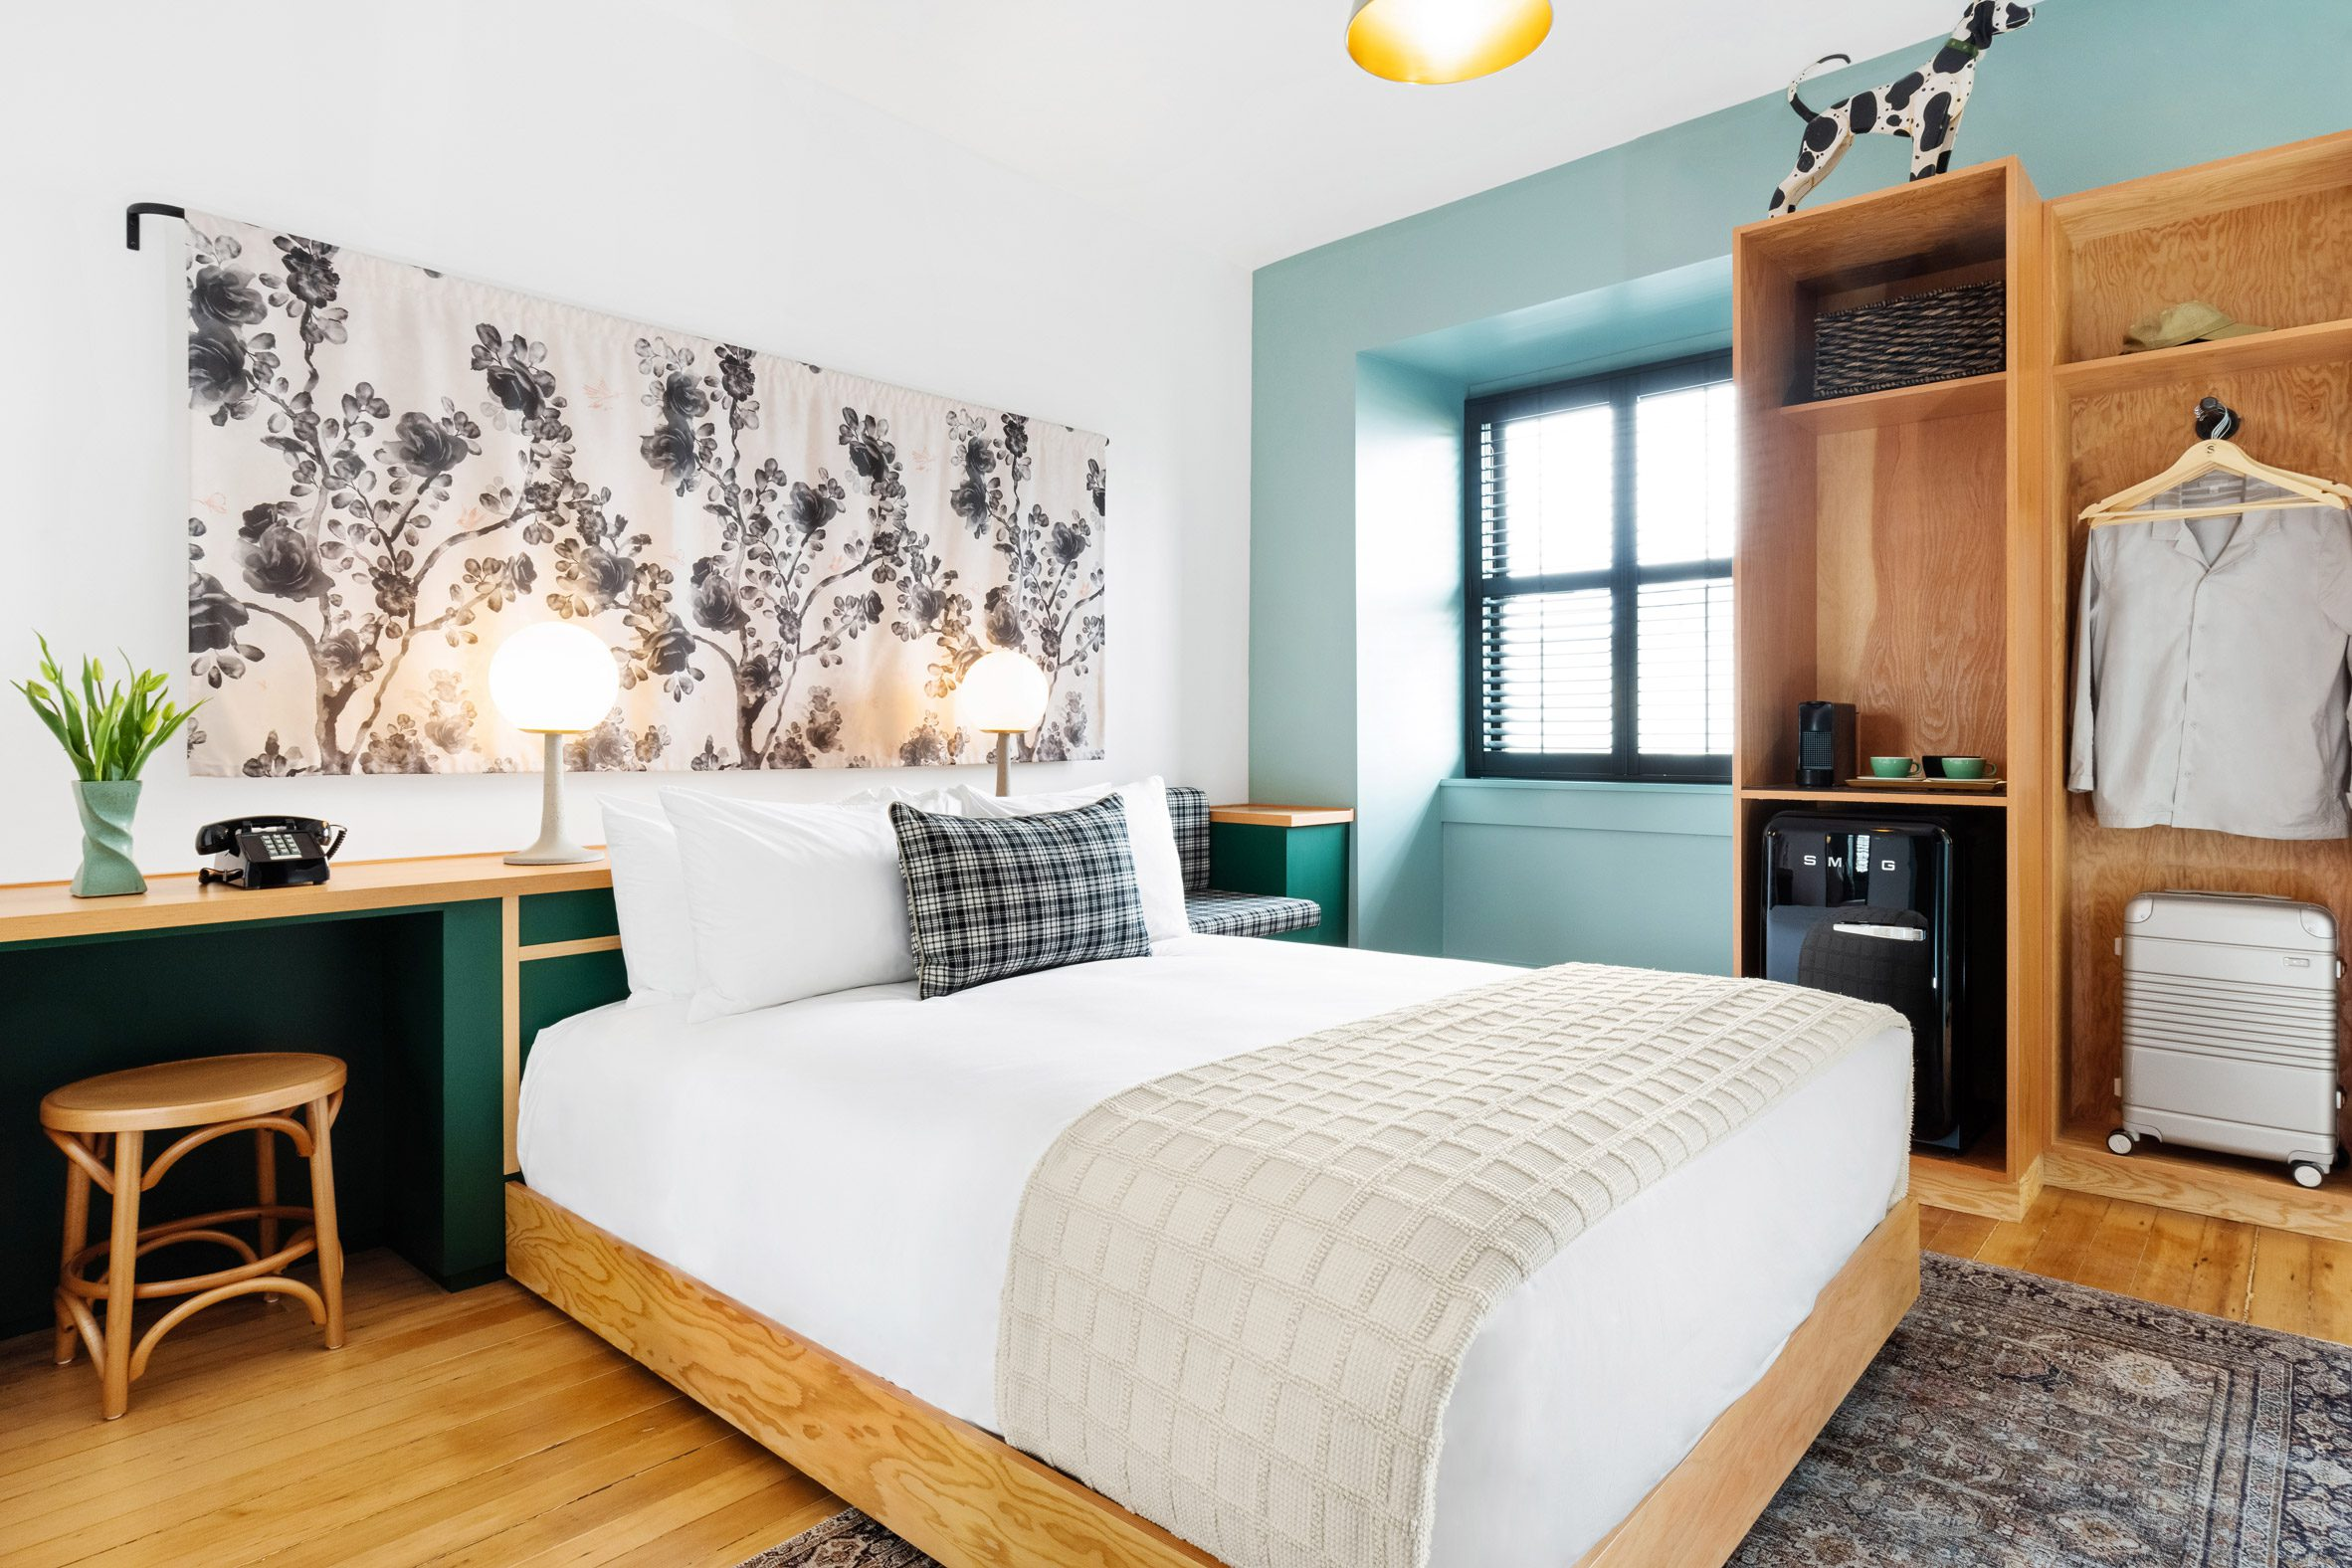 Palisociety and North45 added homely interiors to the hotel